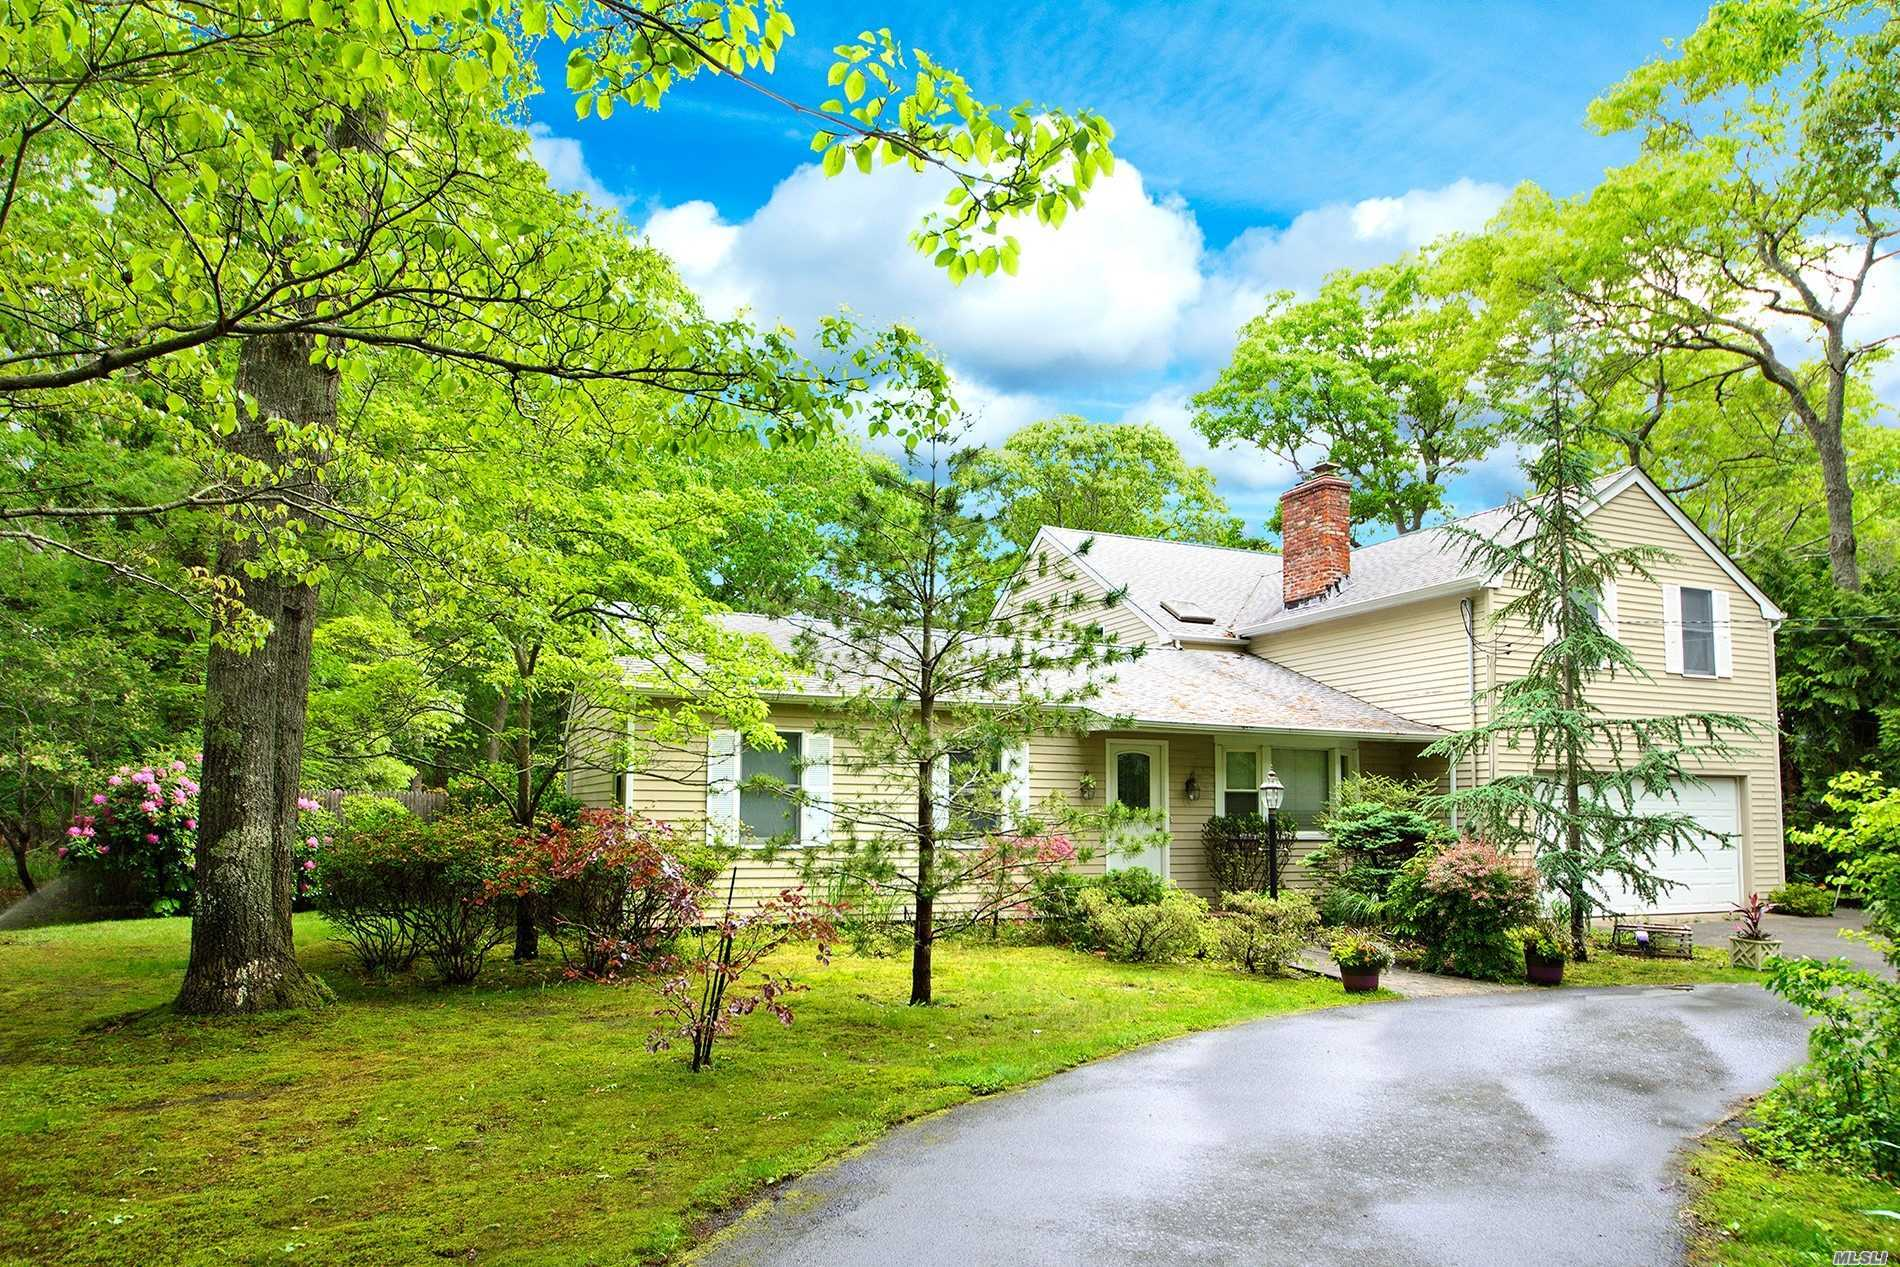 Photo of home for sale at 12 Groveland Ave, East Quogue NY